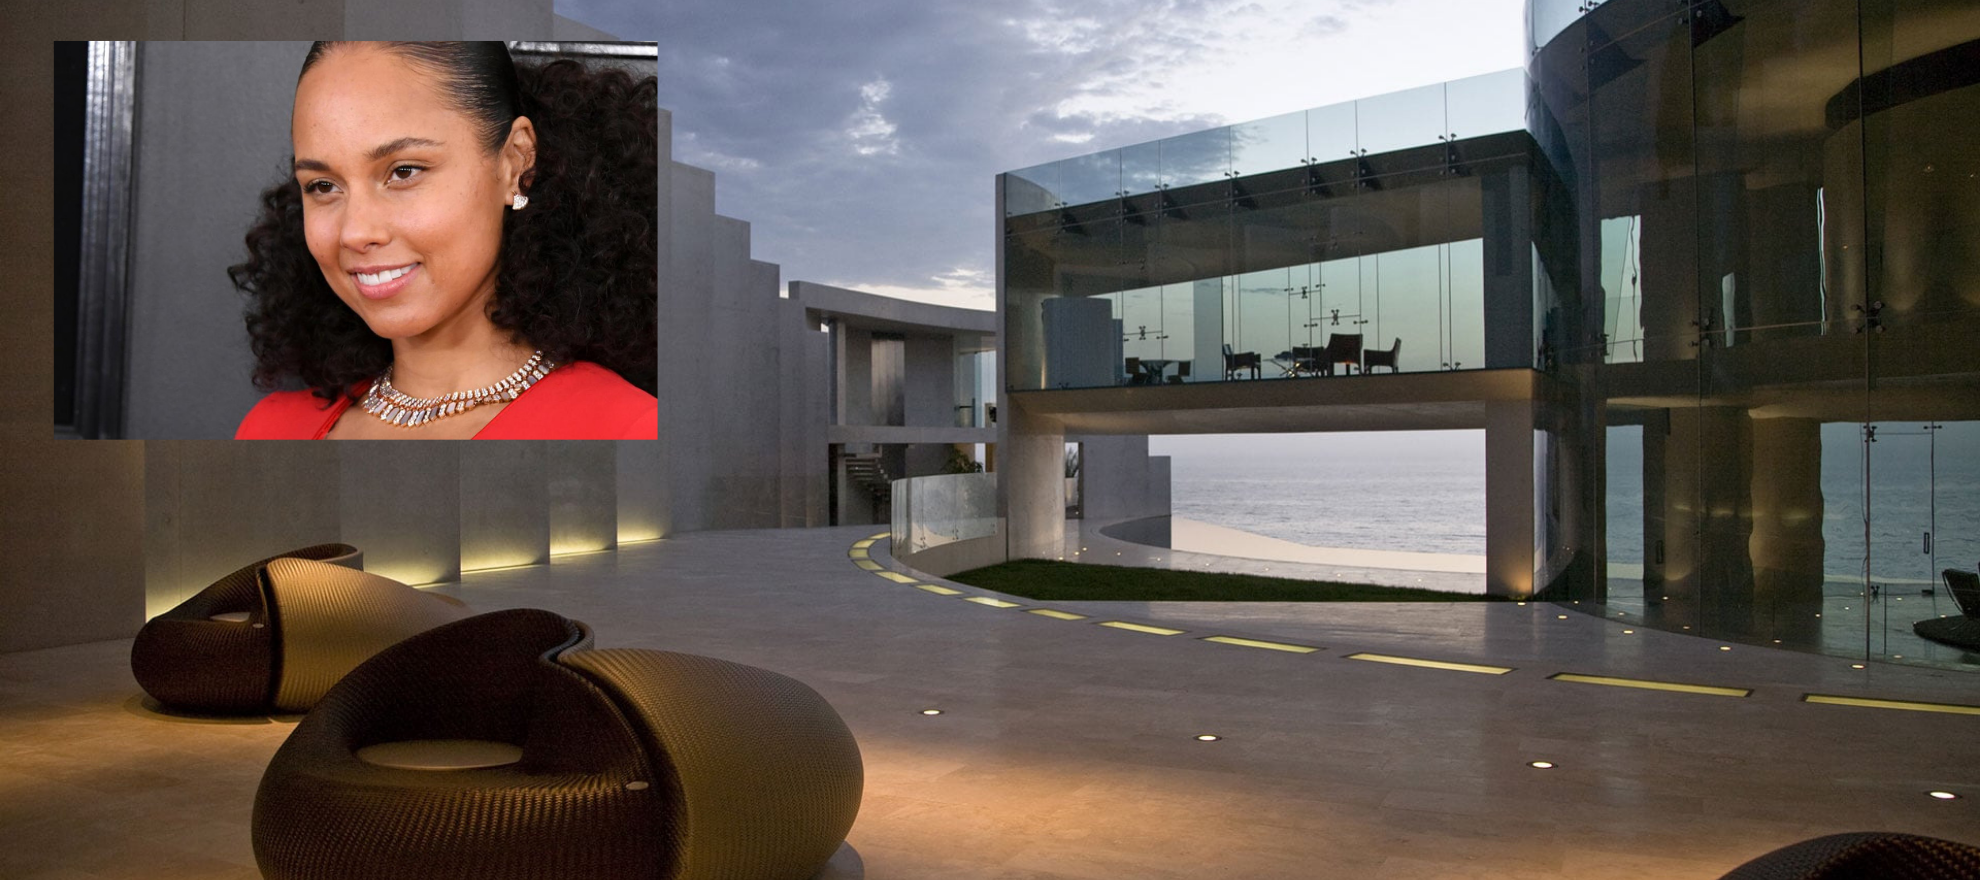 Alicia Keys is the mystery buyer of that stunning 'Iron Man' house